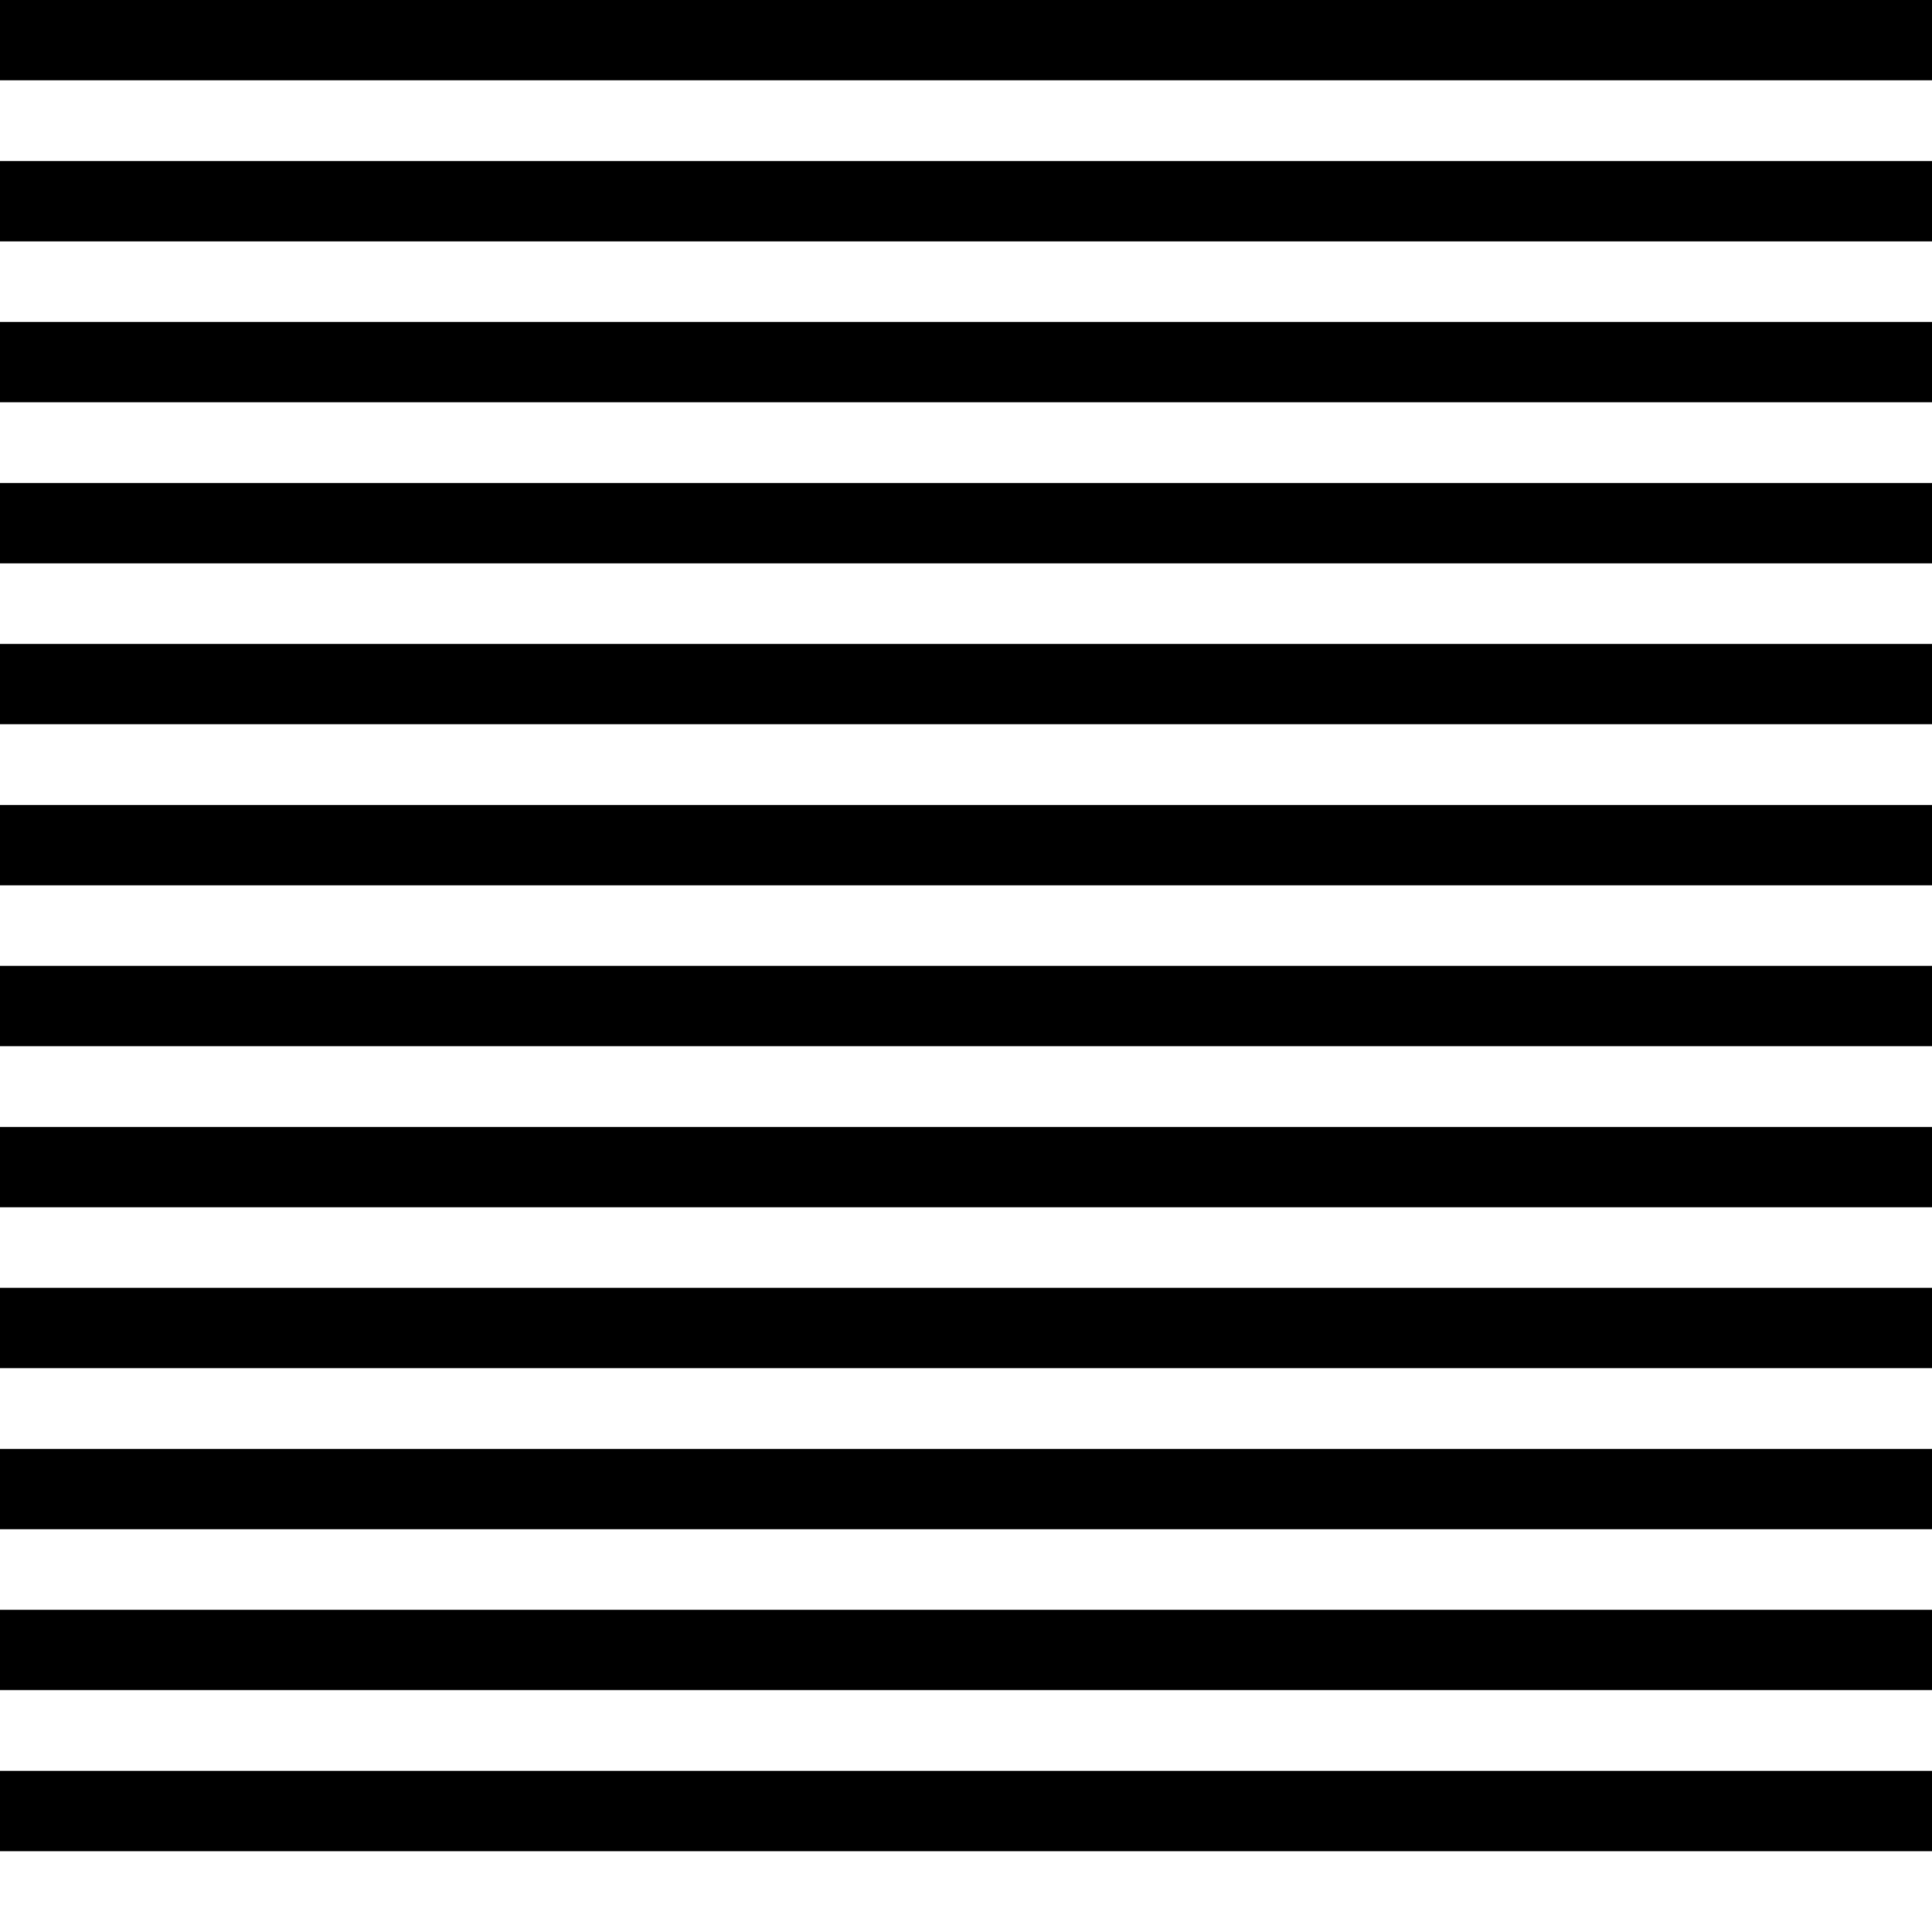 7a38b0e7134eb Black and White Striped Pattern - Free Clip Art